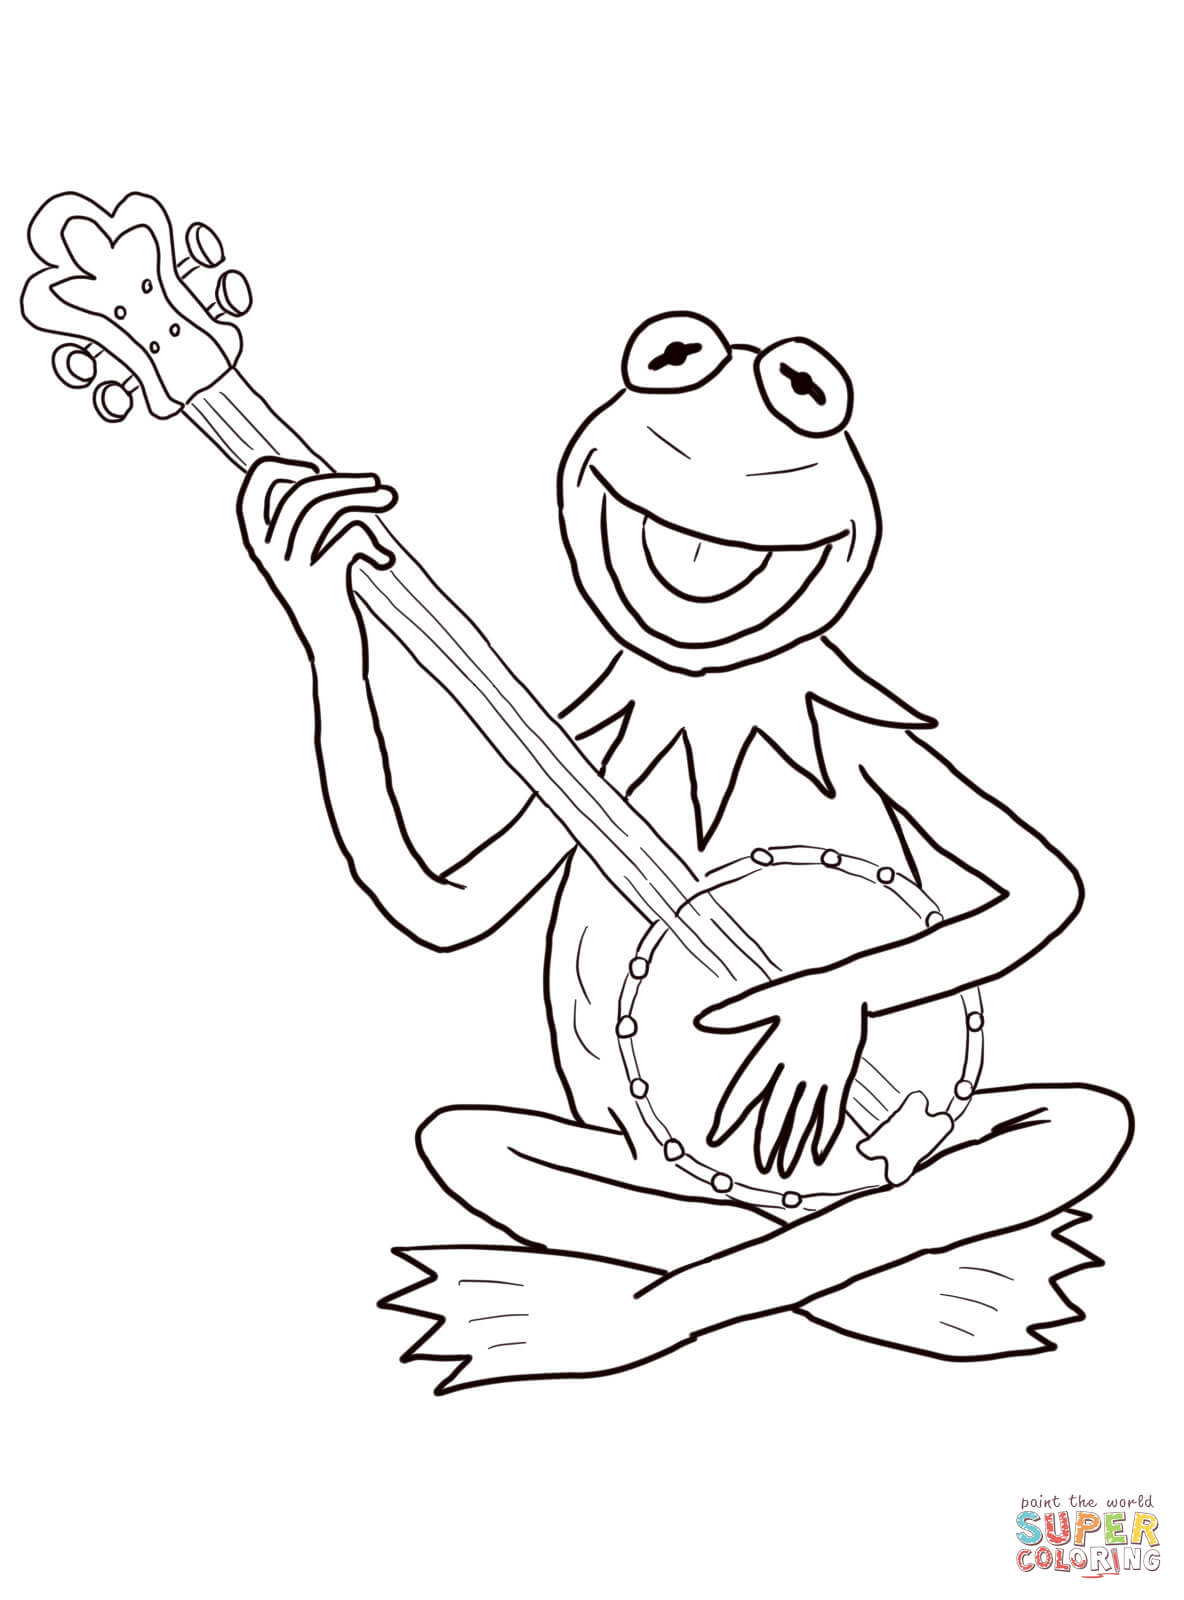 1184x1600 The Muppet Show Coloring Pages Free Coloring Pages